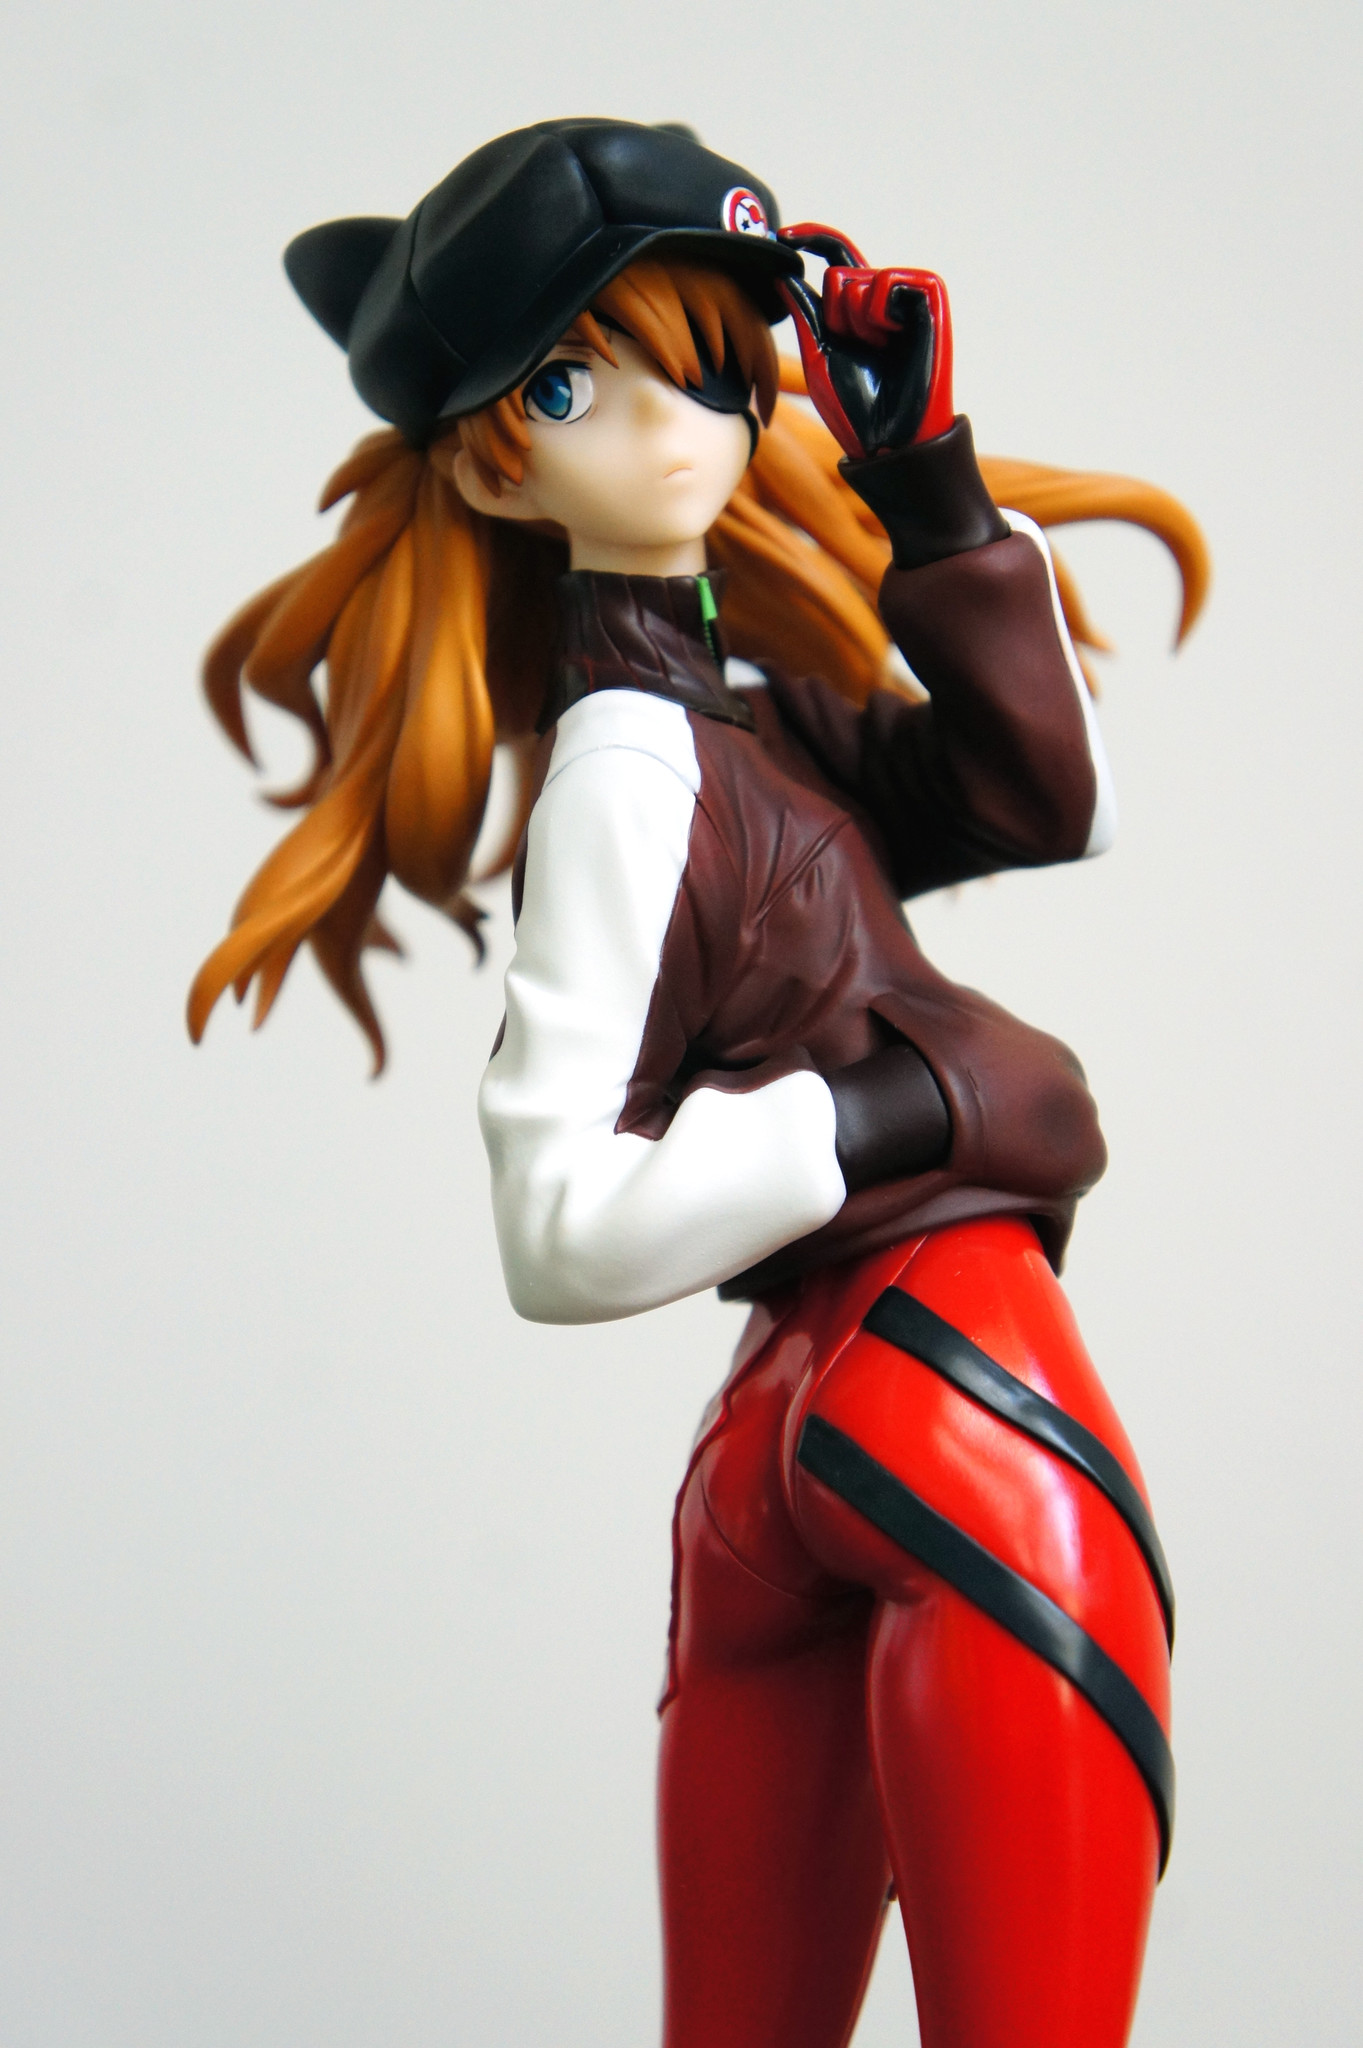 https://static.myfigurecollection.net/upload/pictures/2020/10/10/2538458.jpeg